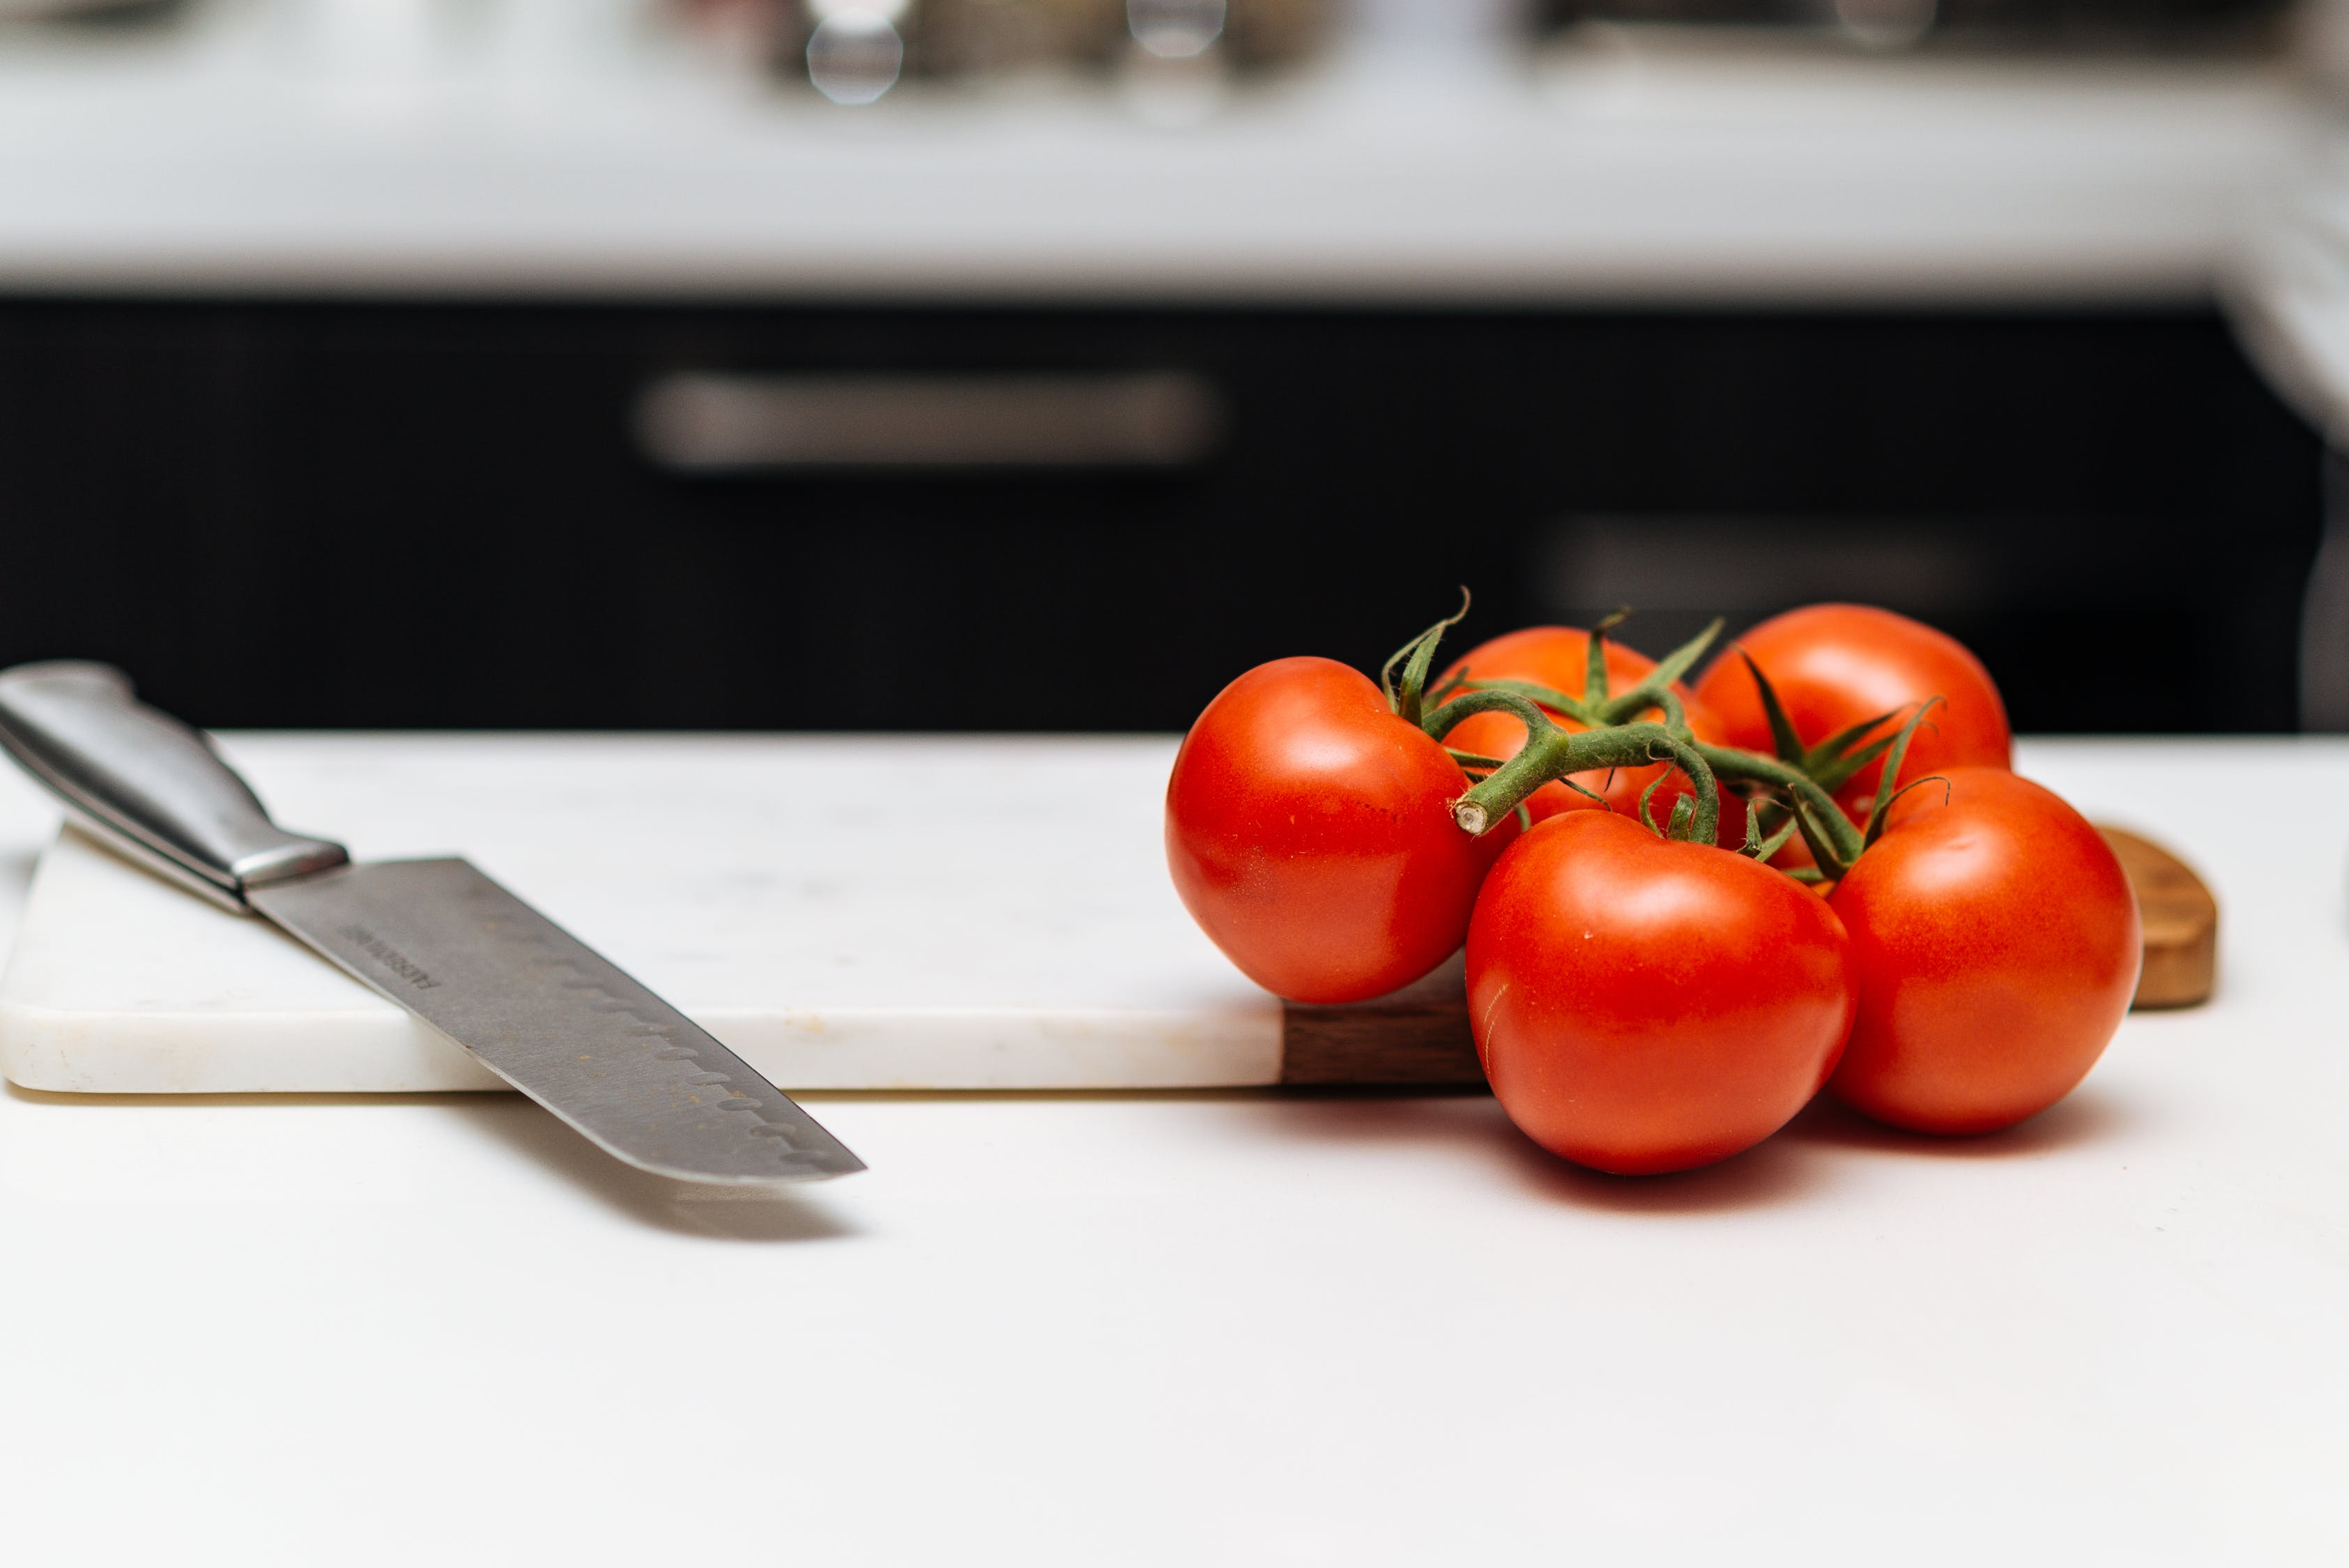 knife and tomato